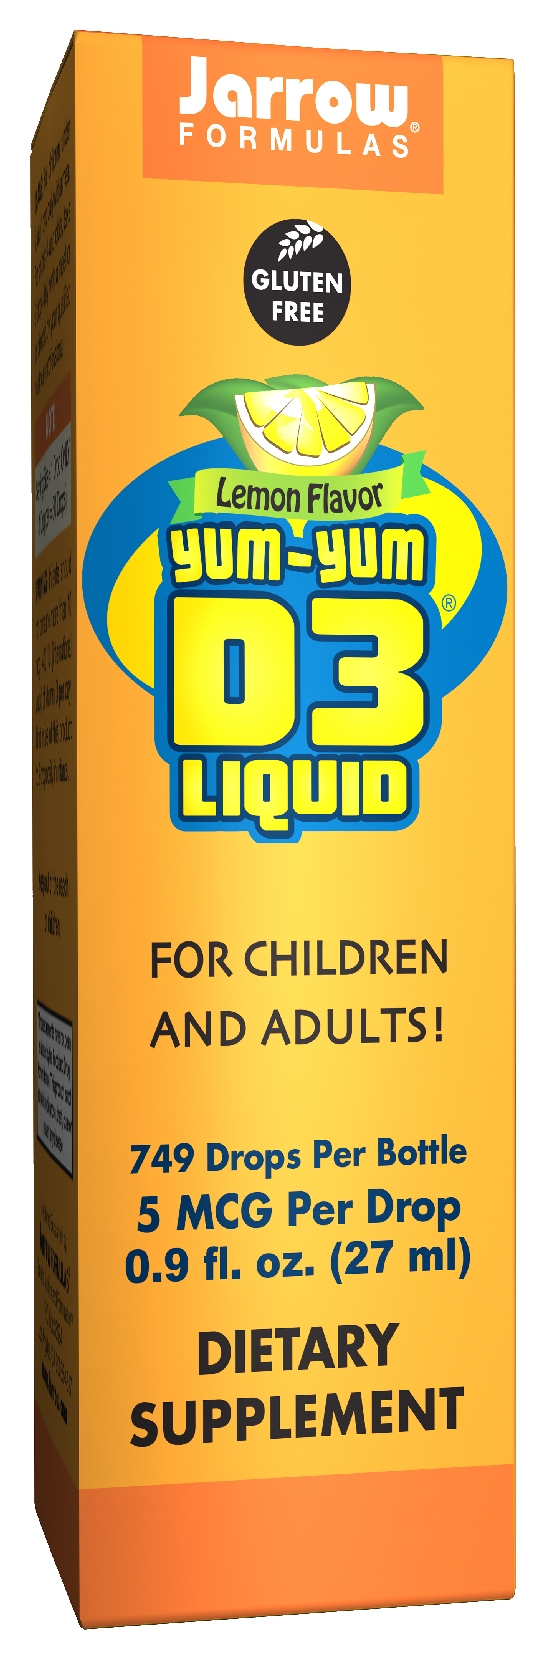 Yum-Yum D3 Liquid 0.9 fl oz (27 ml) by Jarrow Formulas (expires 03/2015)